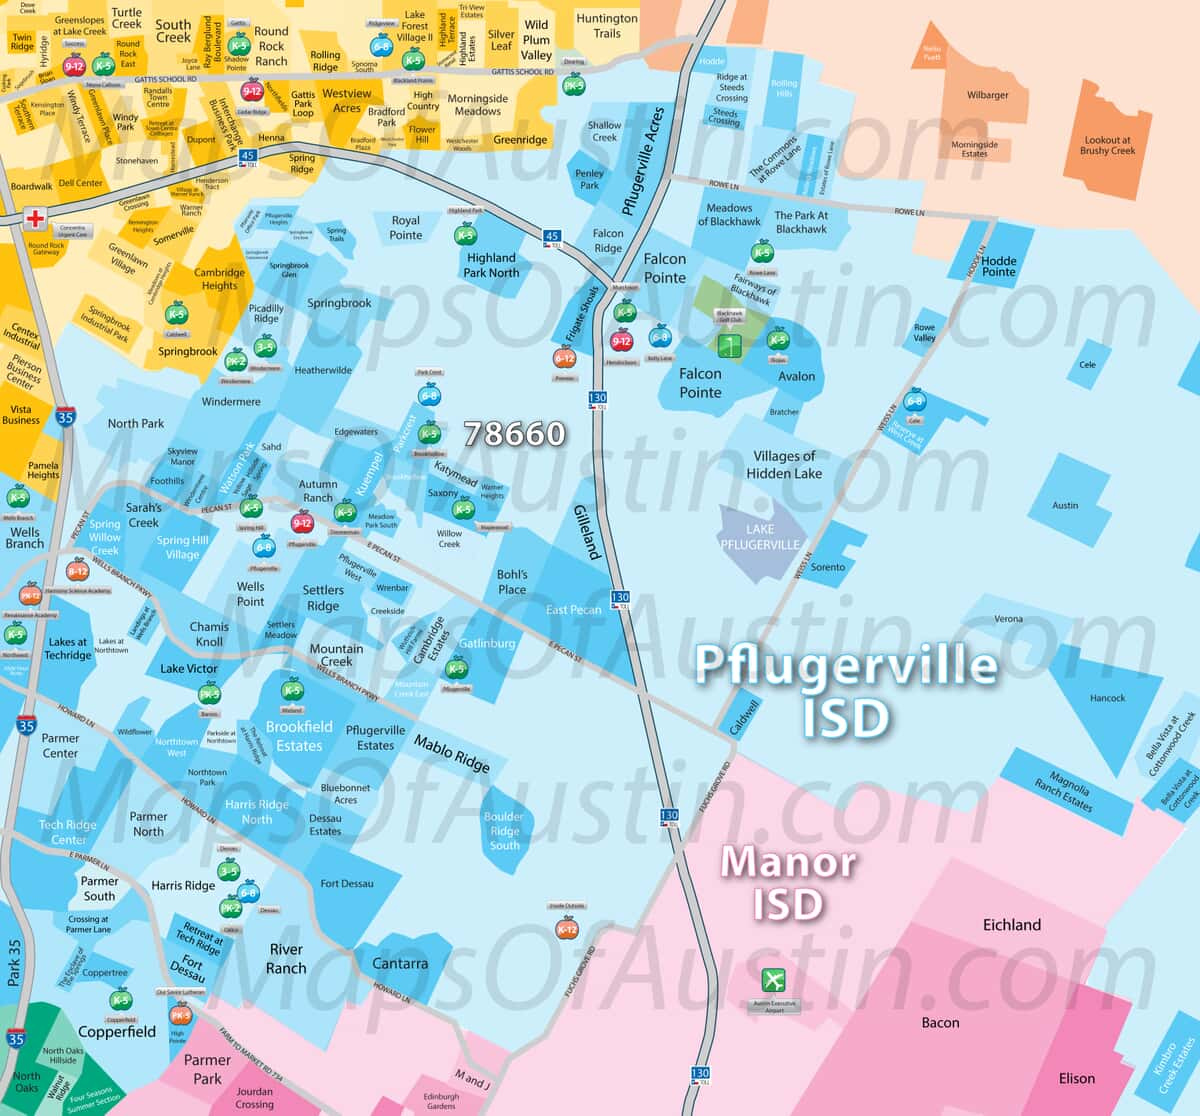 Map Of Texas Cities Only.Pflugerville Tx Pflugerville Neighborhood Map Maps Of